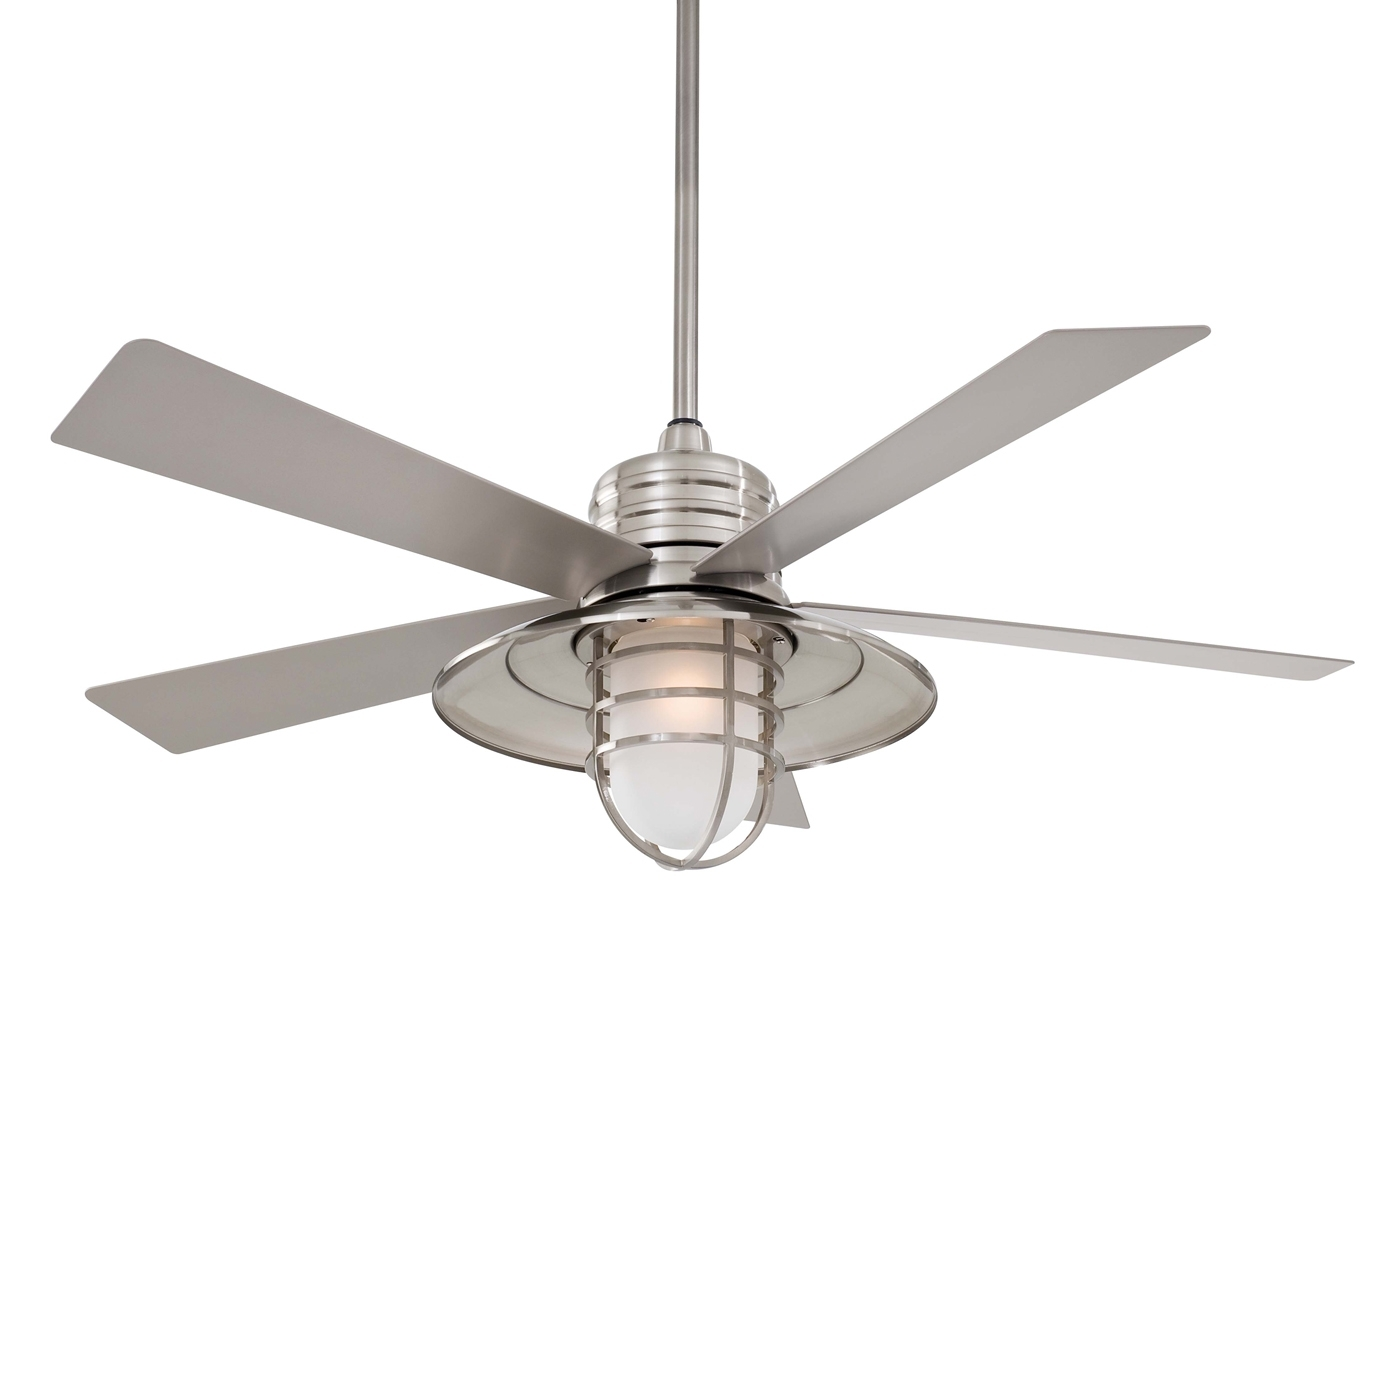 Ceiling Fan: Best Outdoor Ceiling Fans Design Ceiling Fan With Light Throughout 2018 Rustic Outdoor Ceiling Fans With Lights (View 16 of 20)